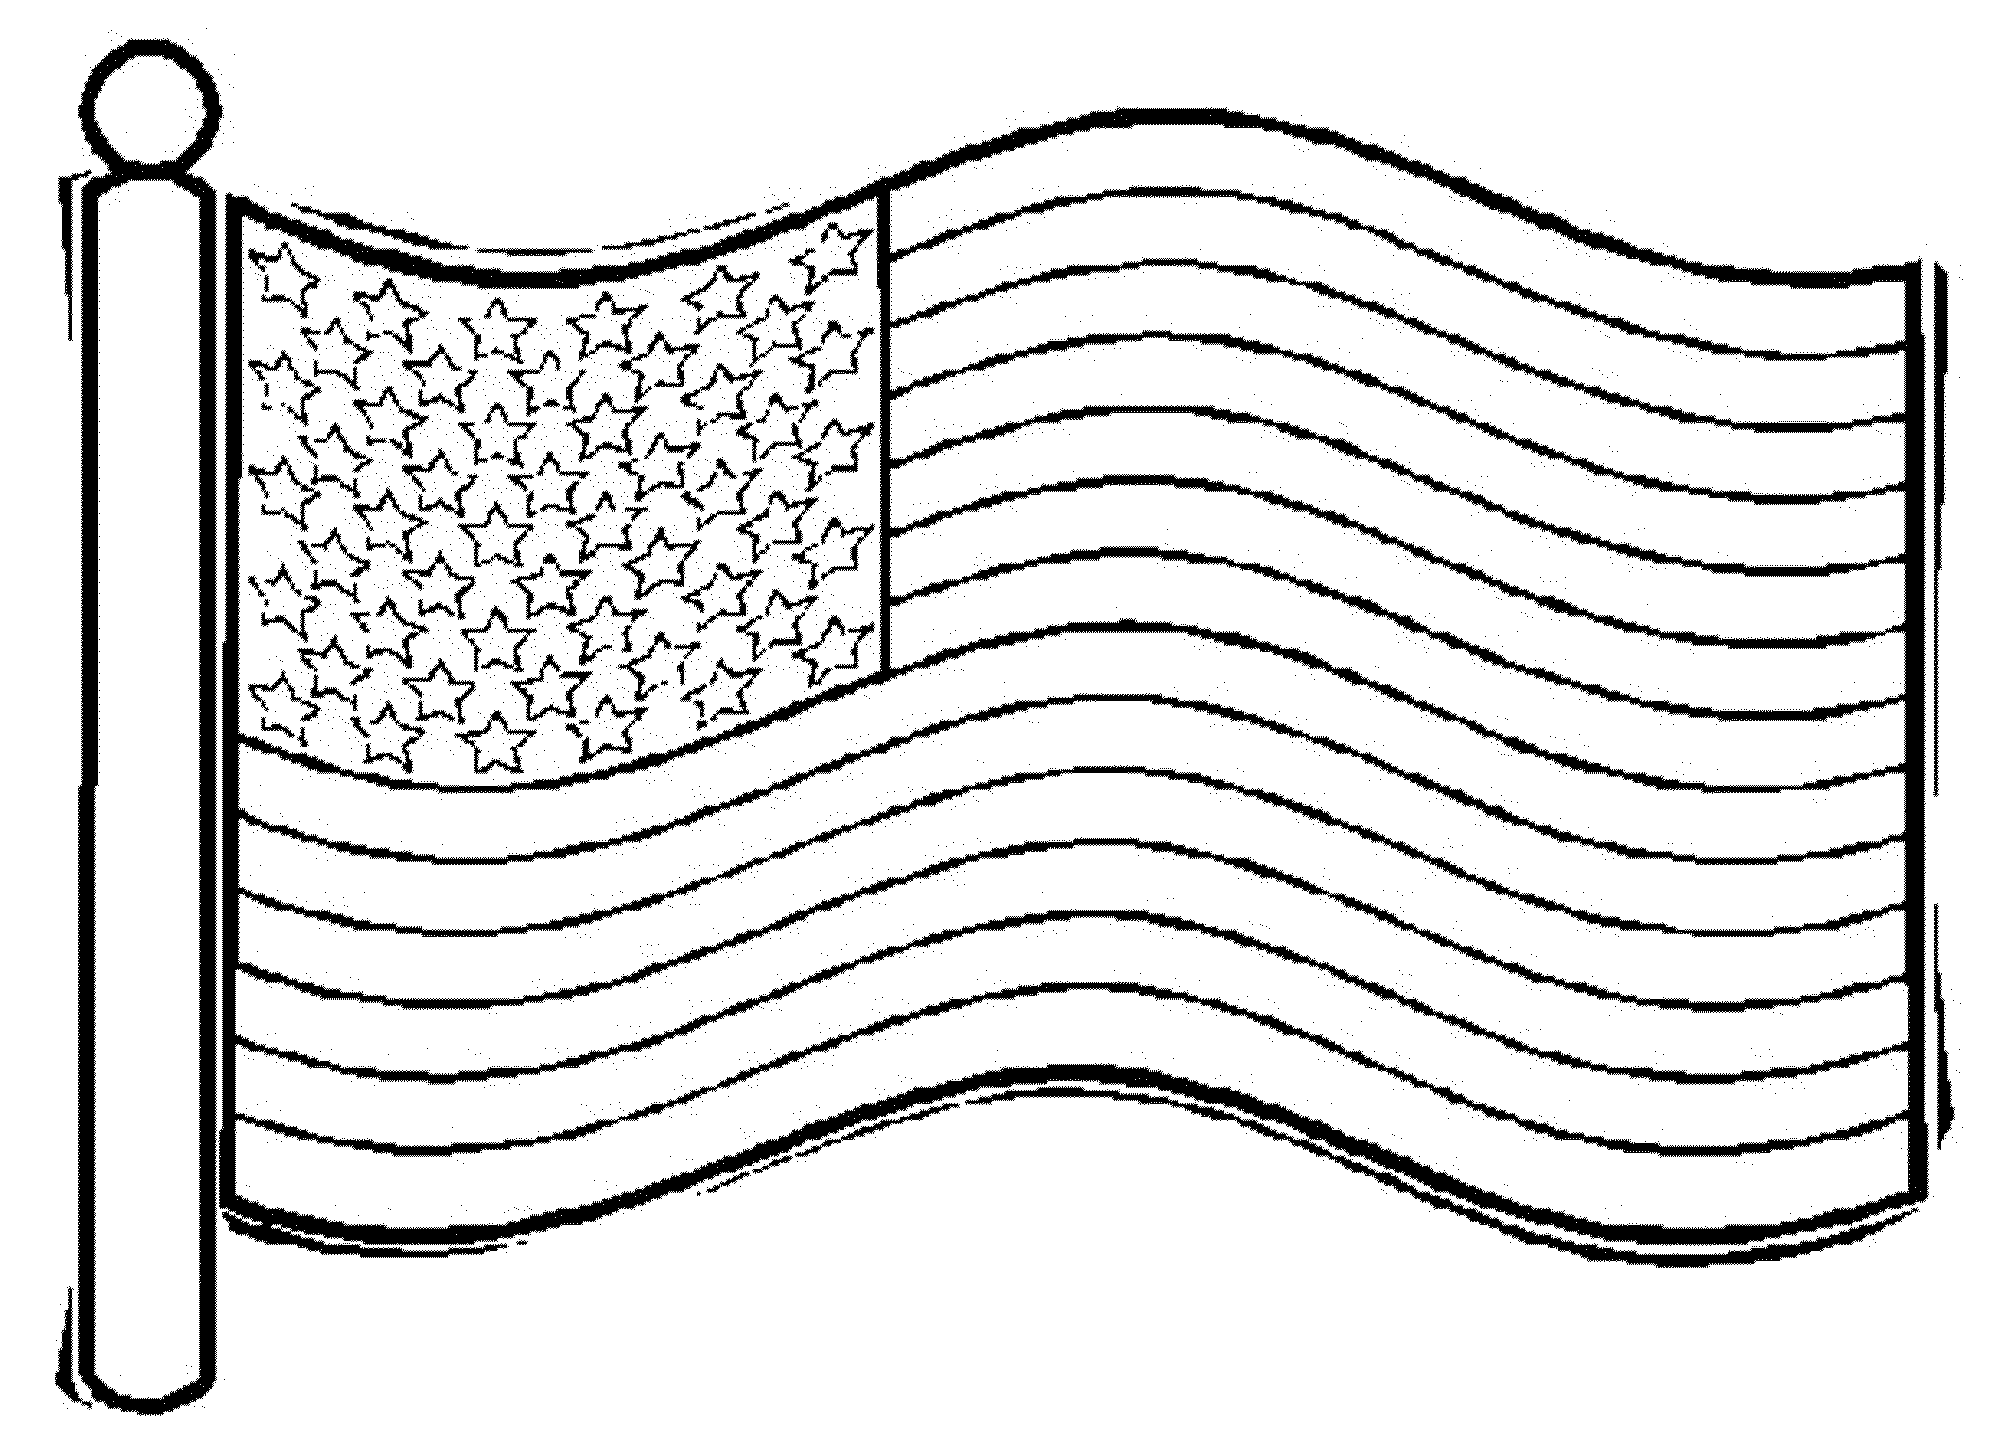 american flag to color american flag coloring pages 2021 z31 coloring page flag color american to